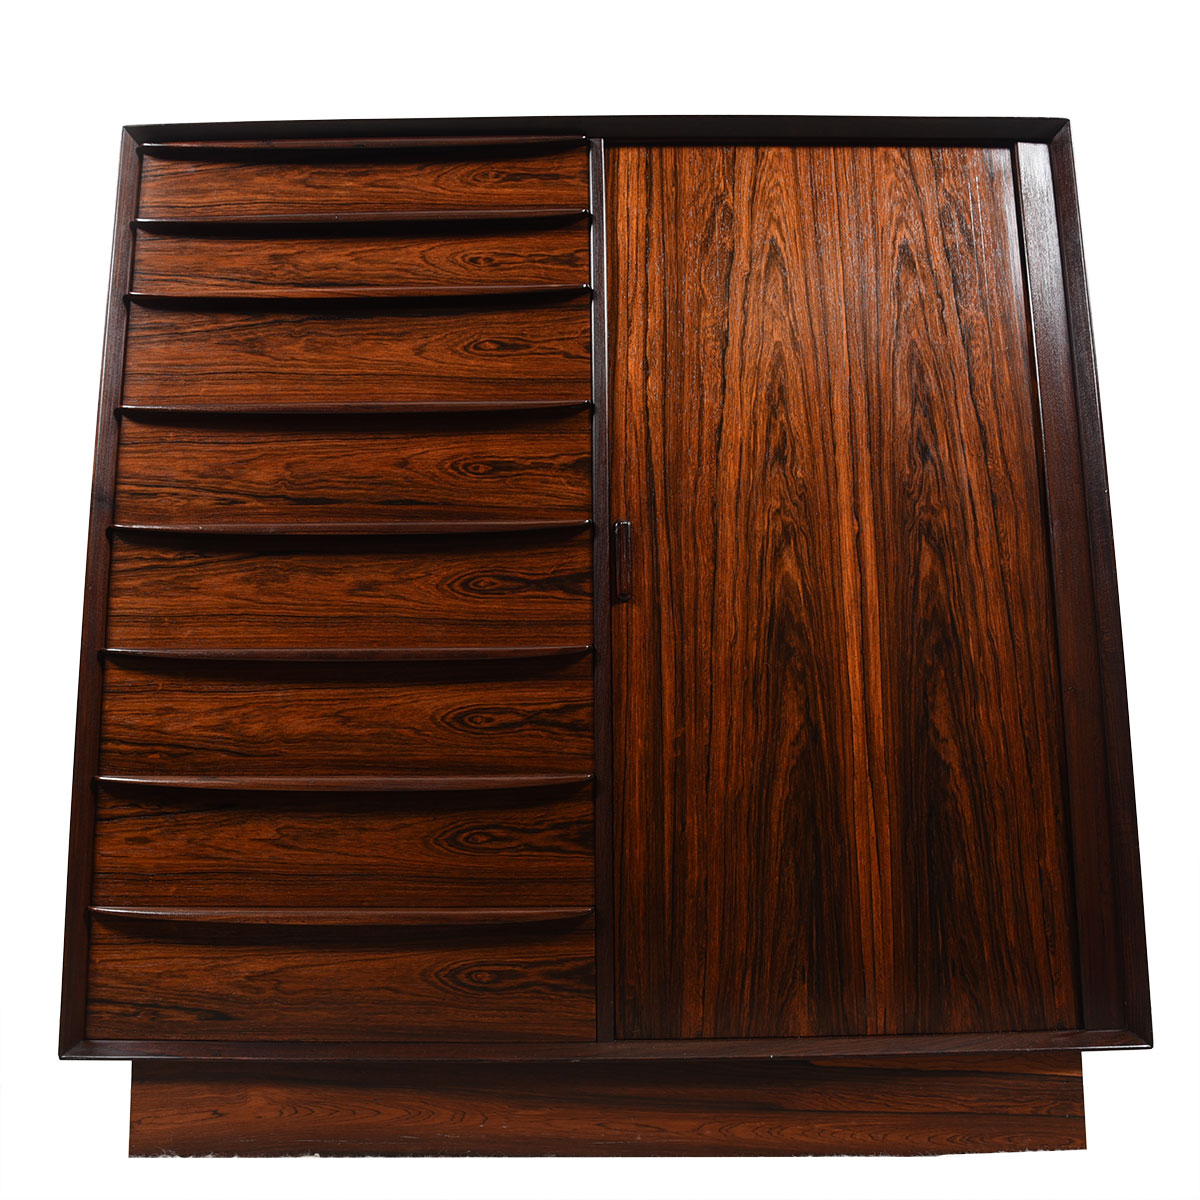 Danish Rosewood Tambour Door Tall Dresser / Gentleman's Chest